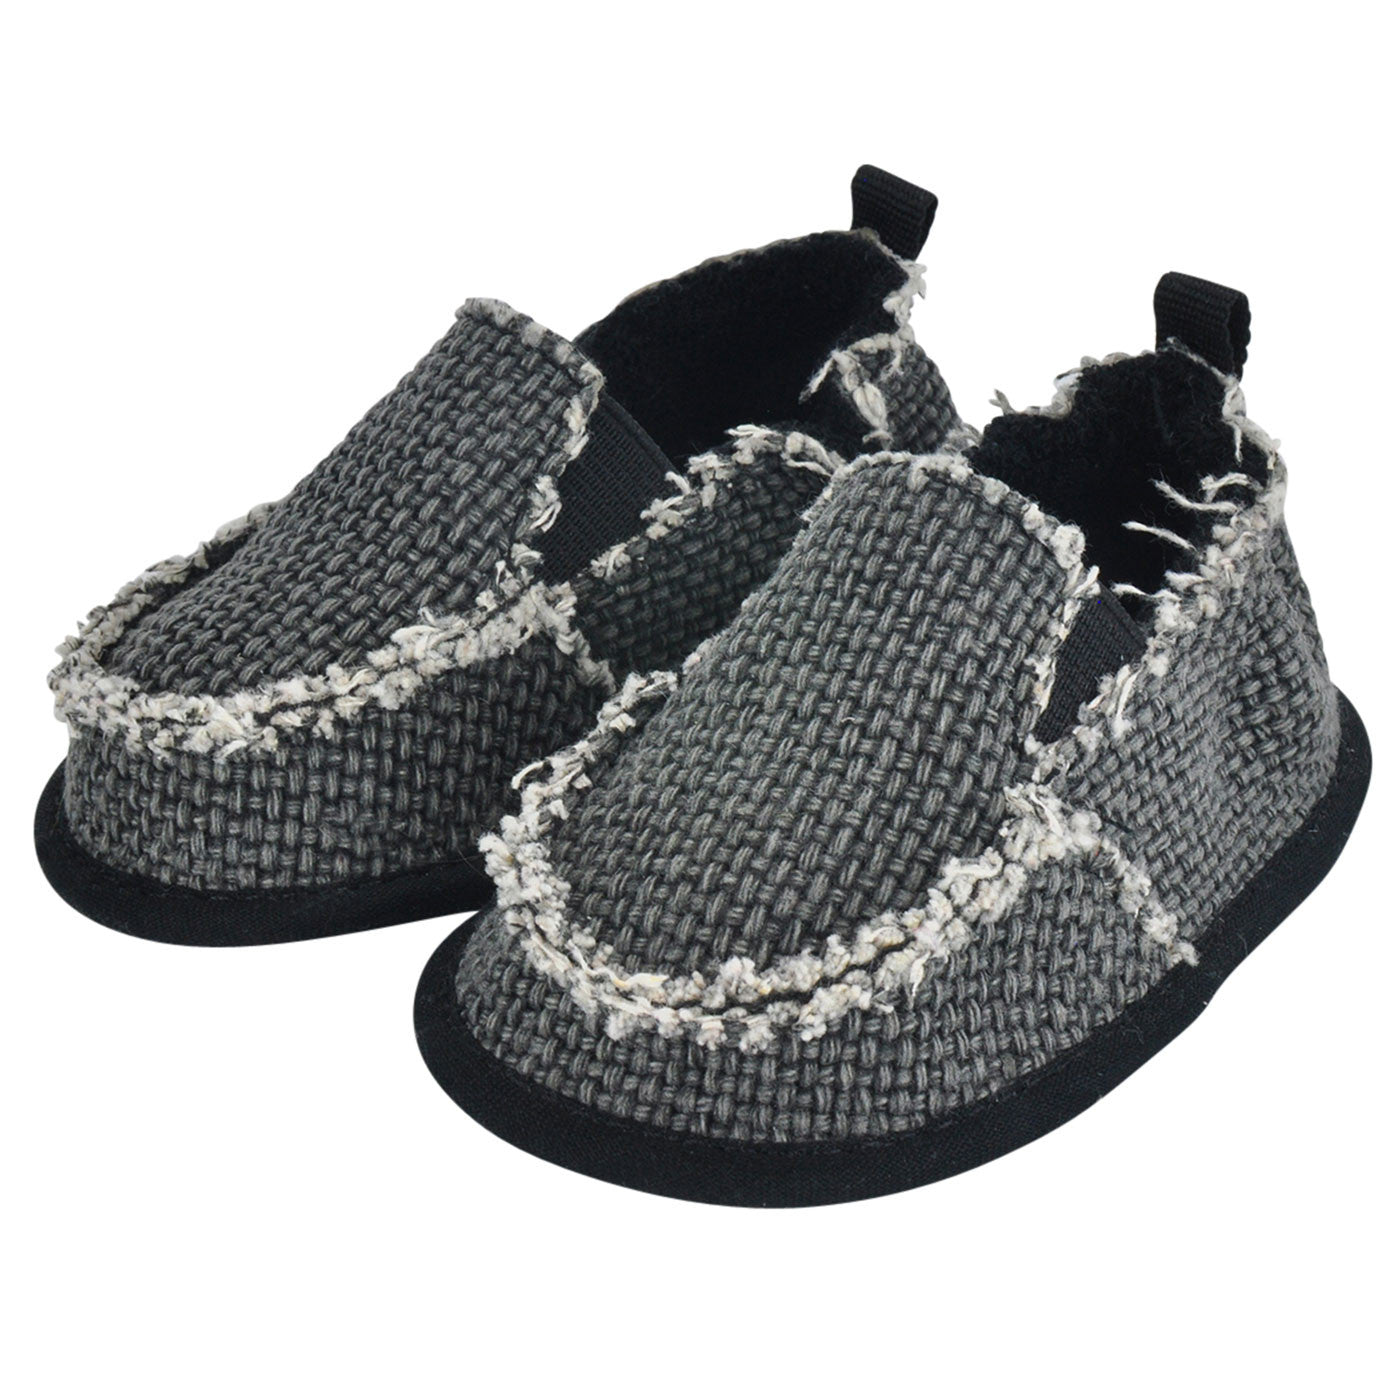 Slip Baby Shoes Moccasins Black Burlap Cruiser